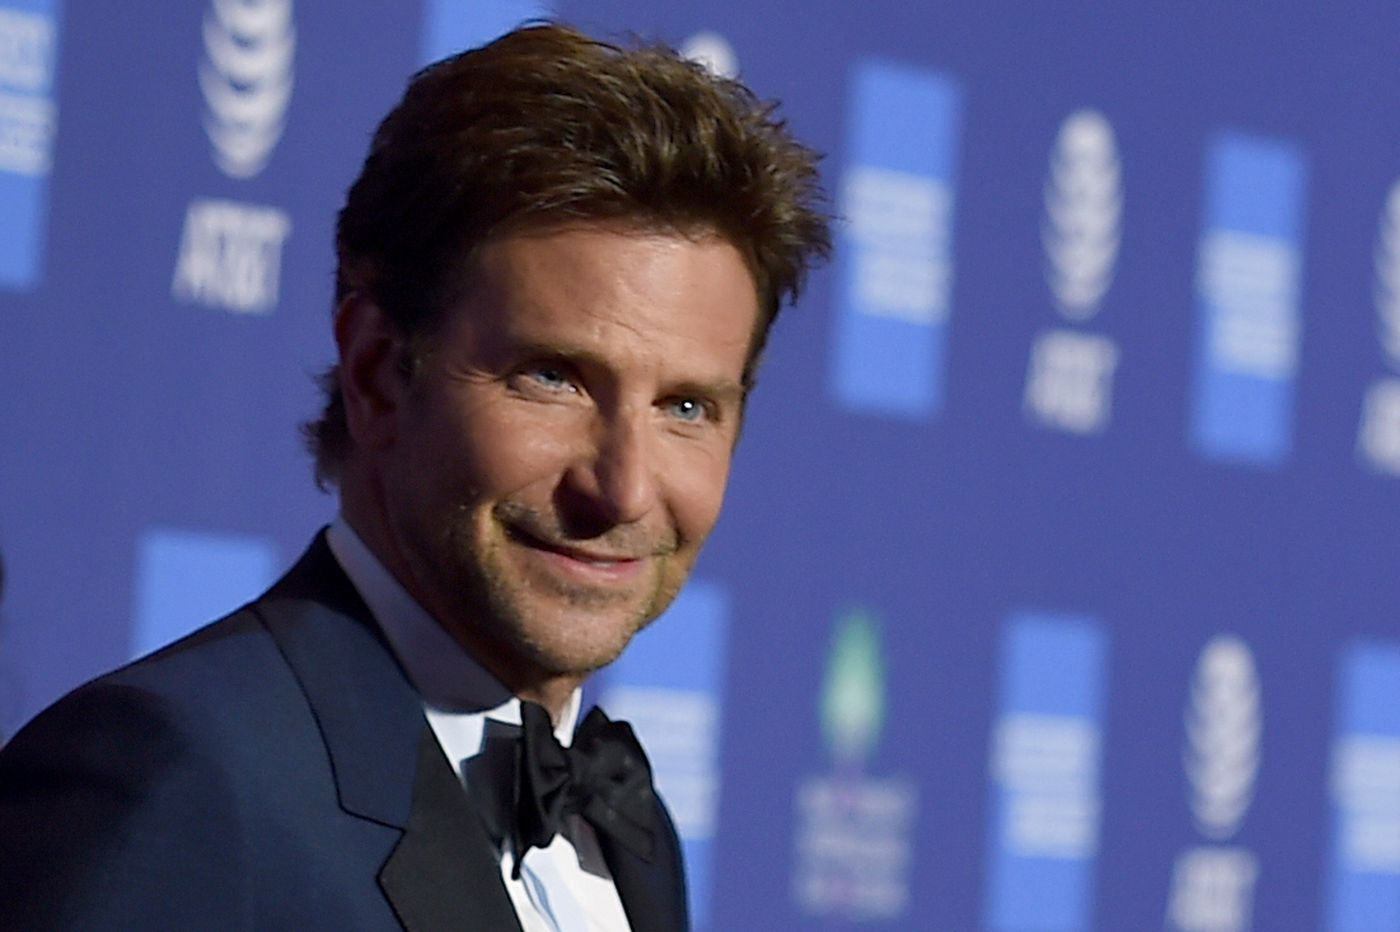 Bradley Cooper makes Forbes' highest-paid actors list